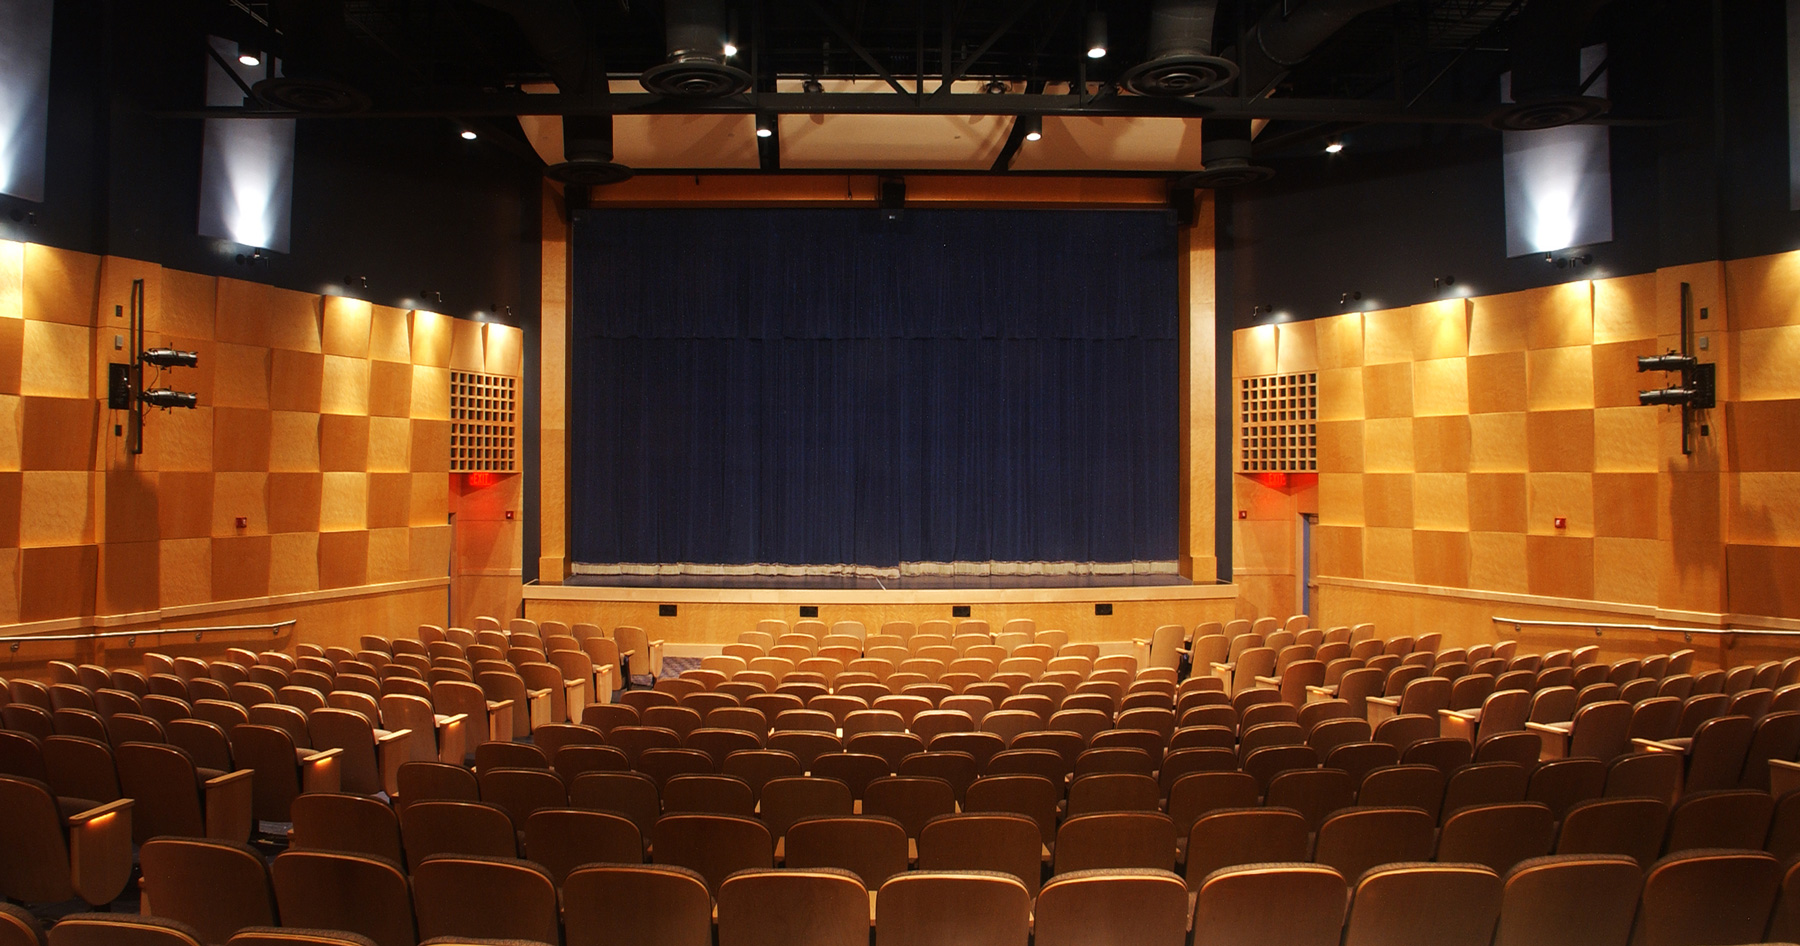 Sanply-maple-be-fla-memorial-college-auditorium_8009900368_o